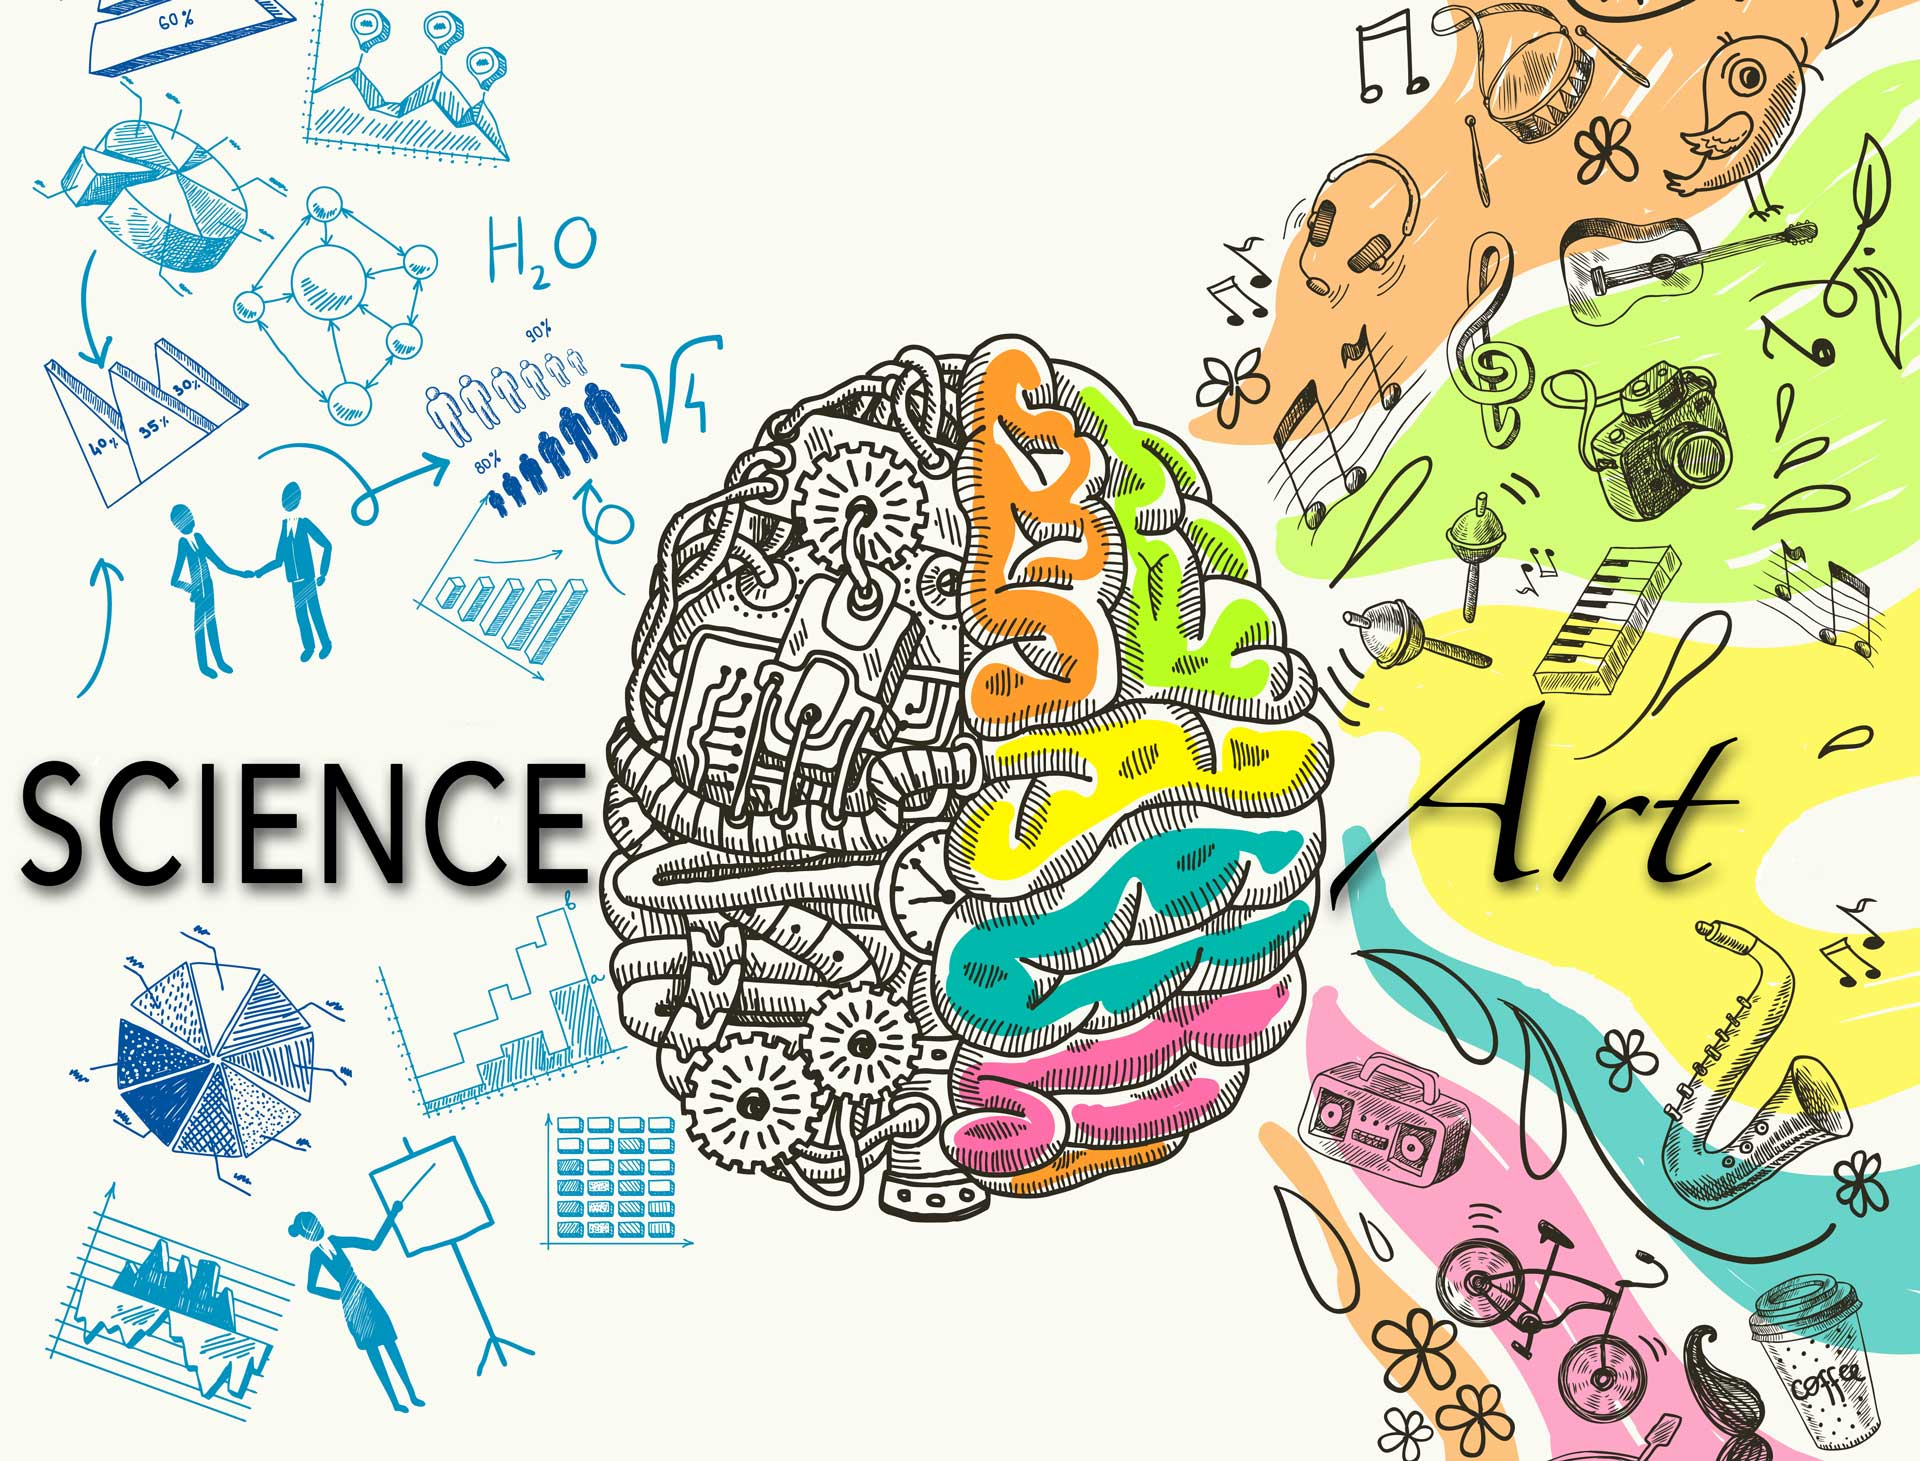 marketing management an art or a science Get an answer for 'management is both an art and a science please explain this quote' and find homework help for other business questions at enotes.